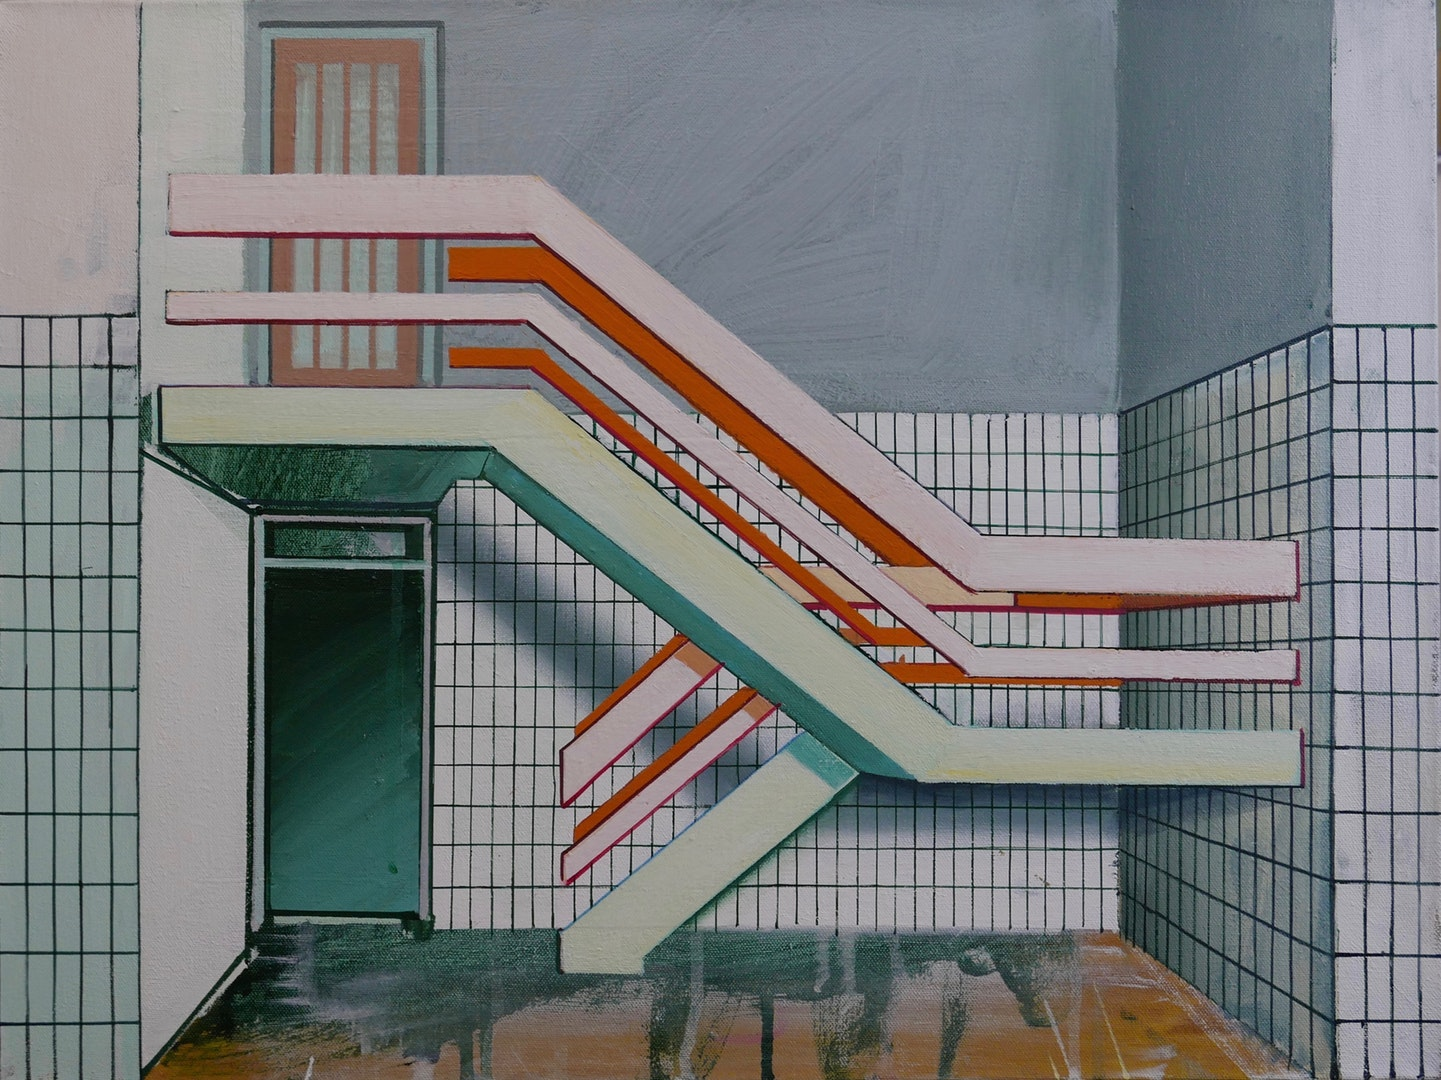 'Stairway', Paul Crook, Acrylic on canvas, 60 x 45 cm